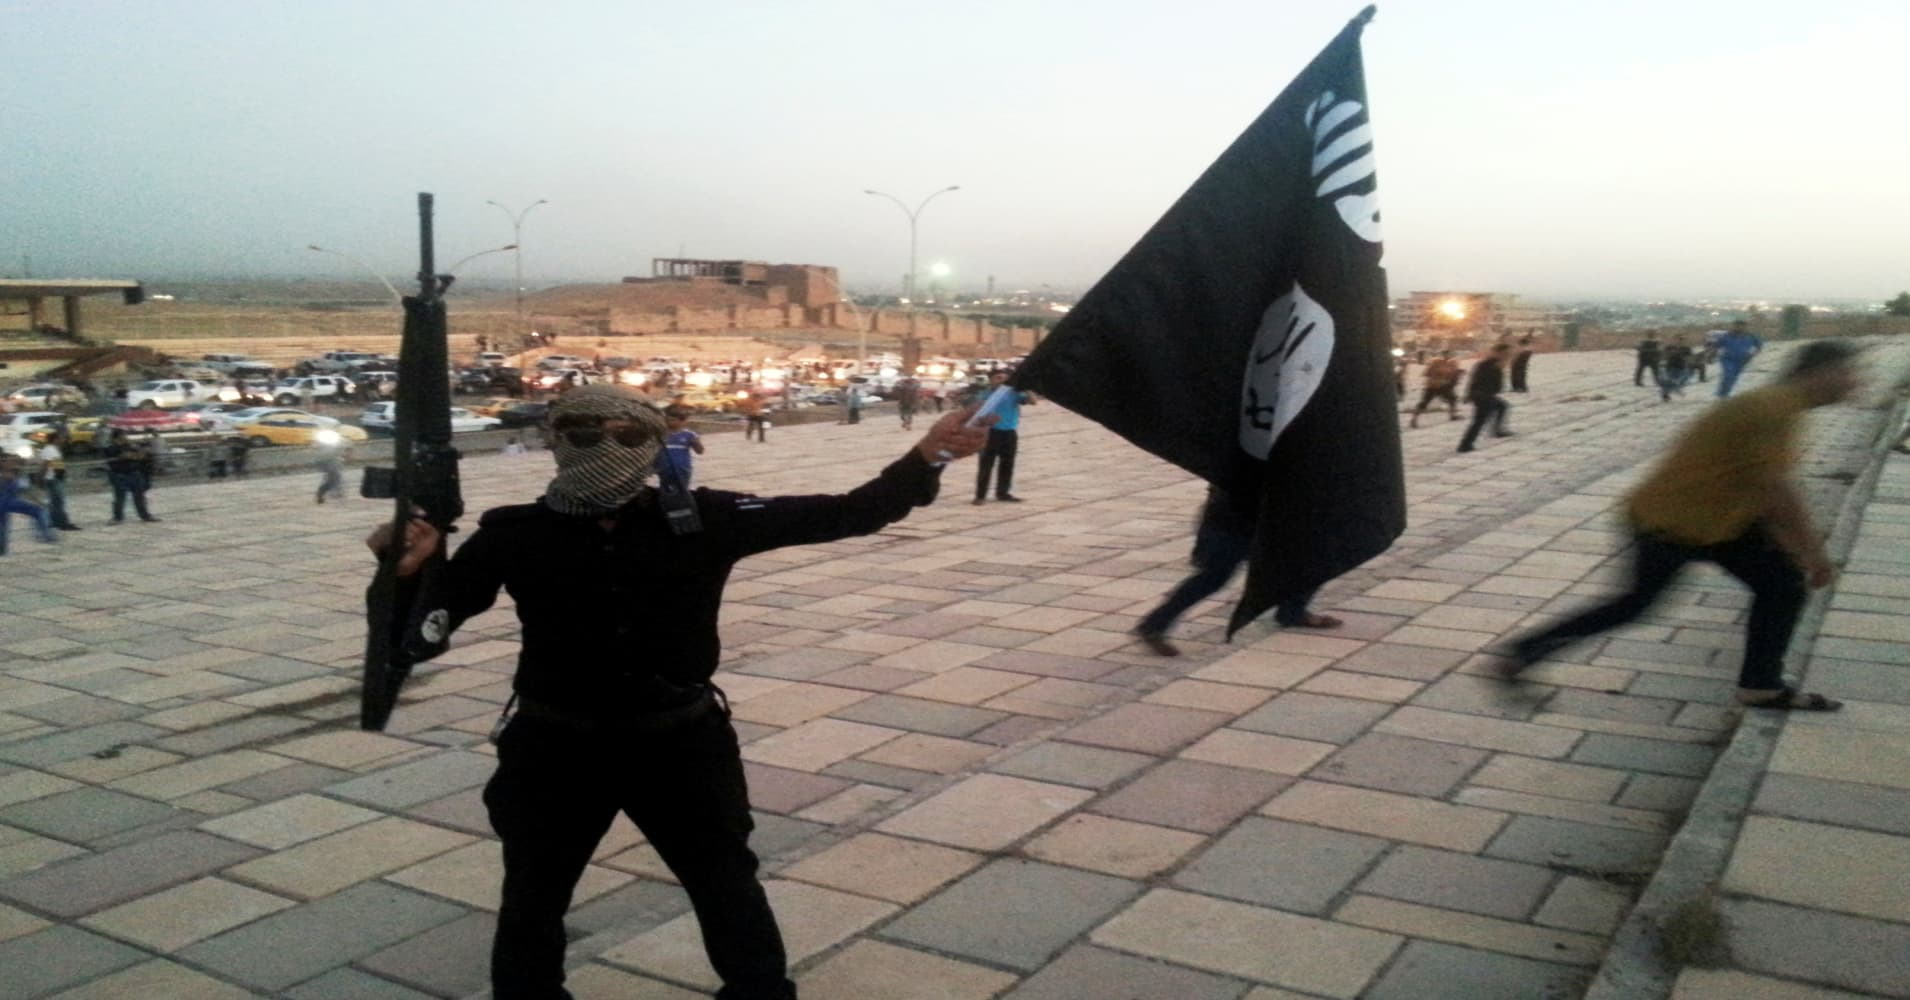 Read this now: Plan for ISIS   Carnival resumed   Trade Joe's recall